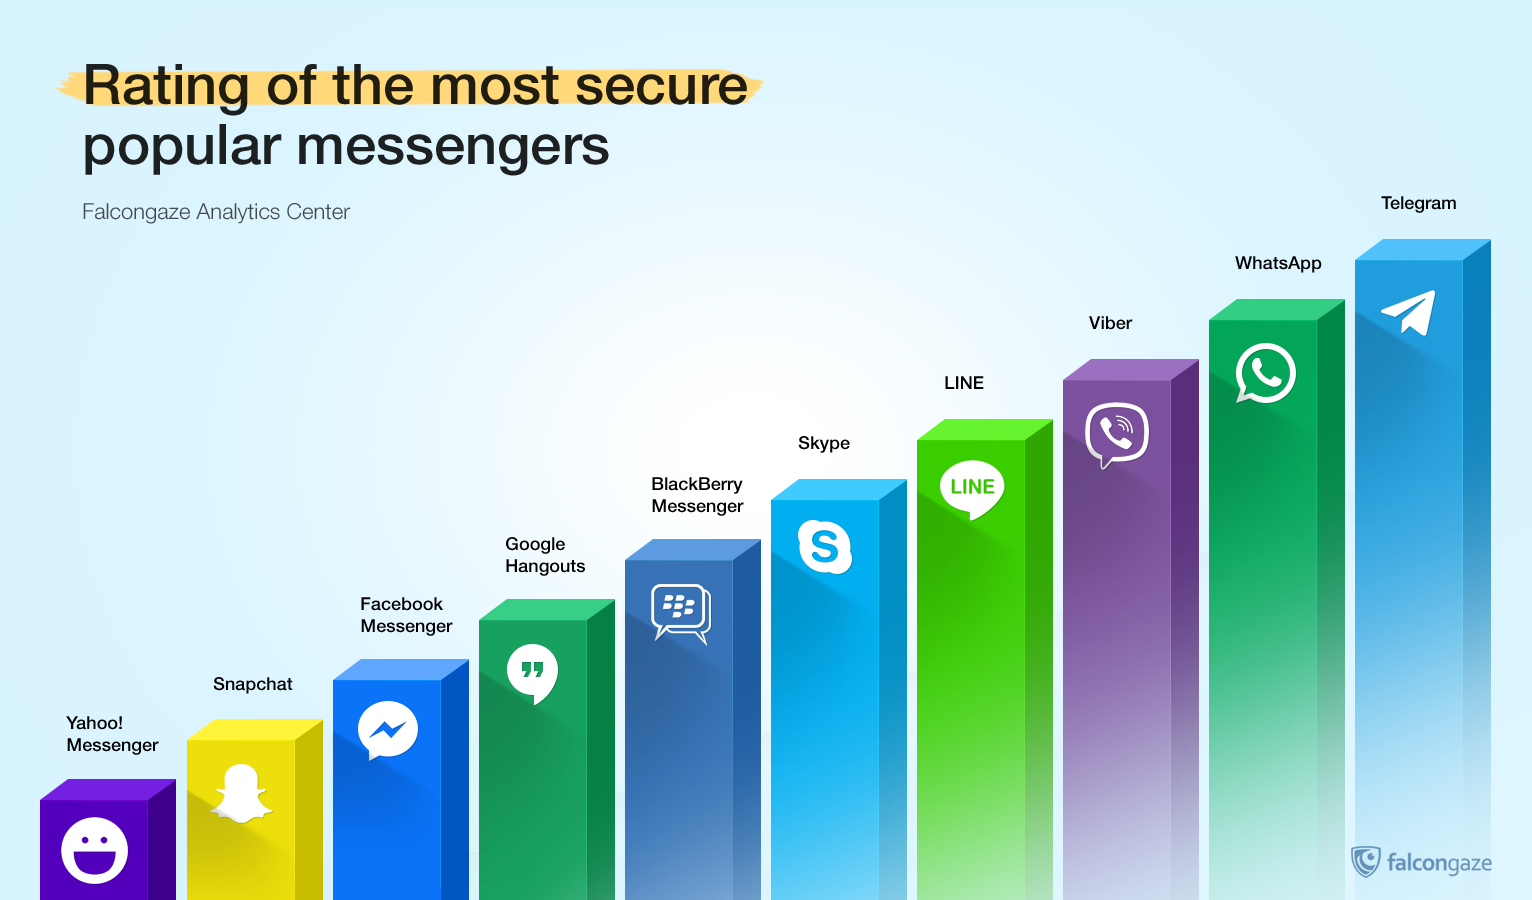 Convenience & security: rating of the most secure popular messengers